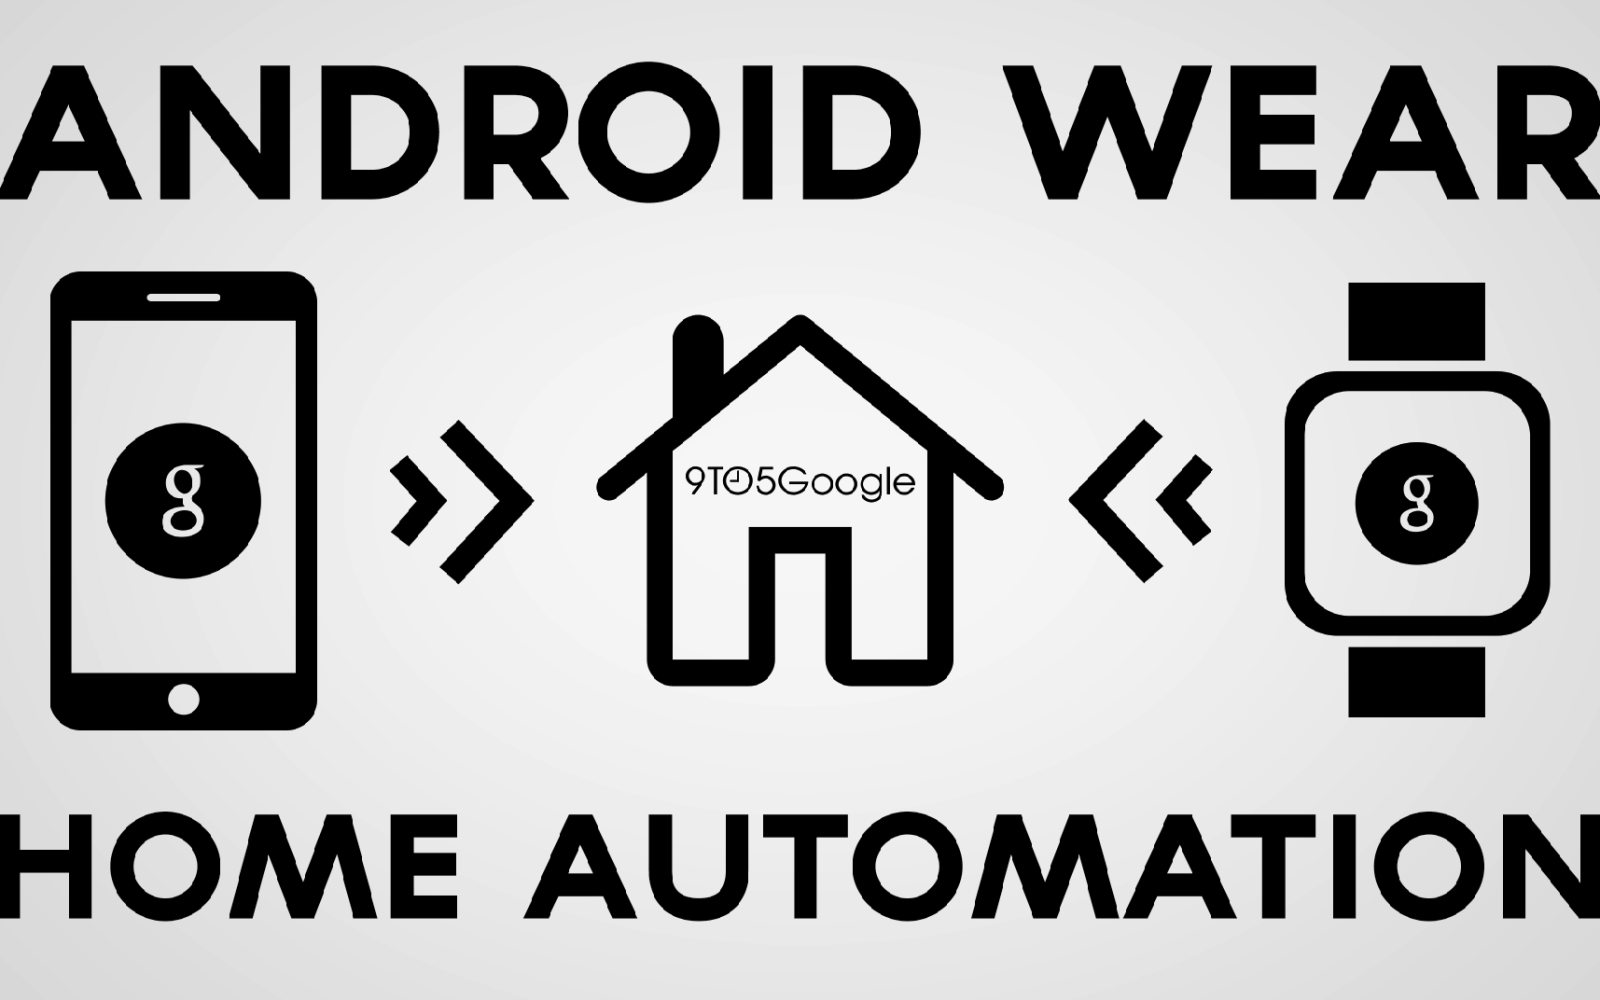 How to get started automating your home with Android Wear (Video)